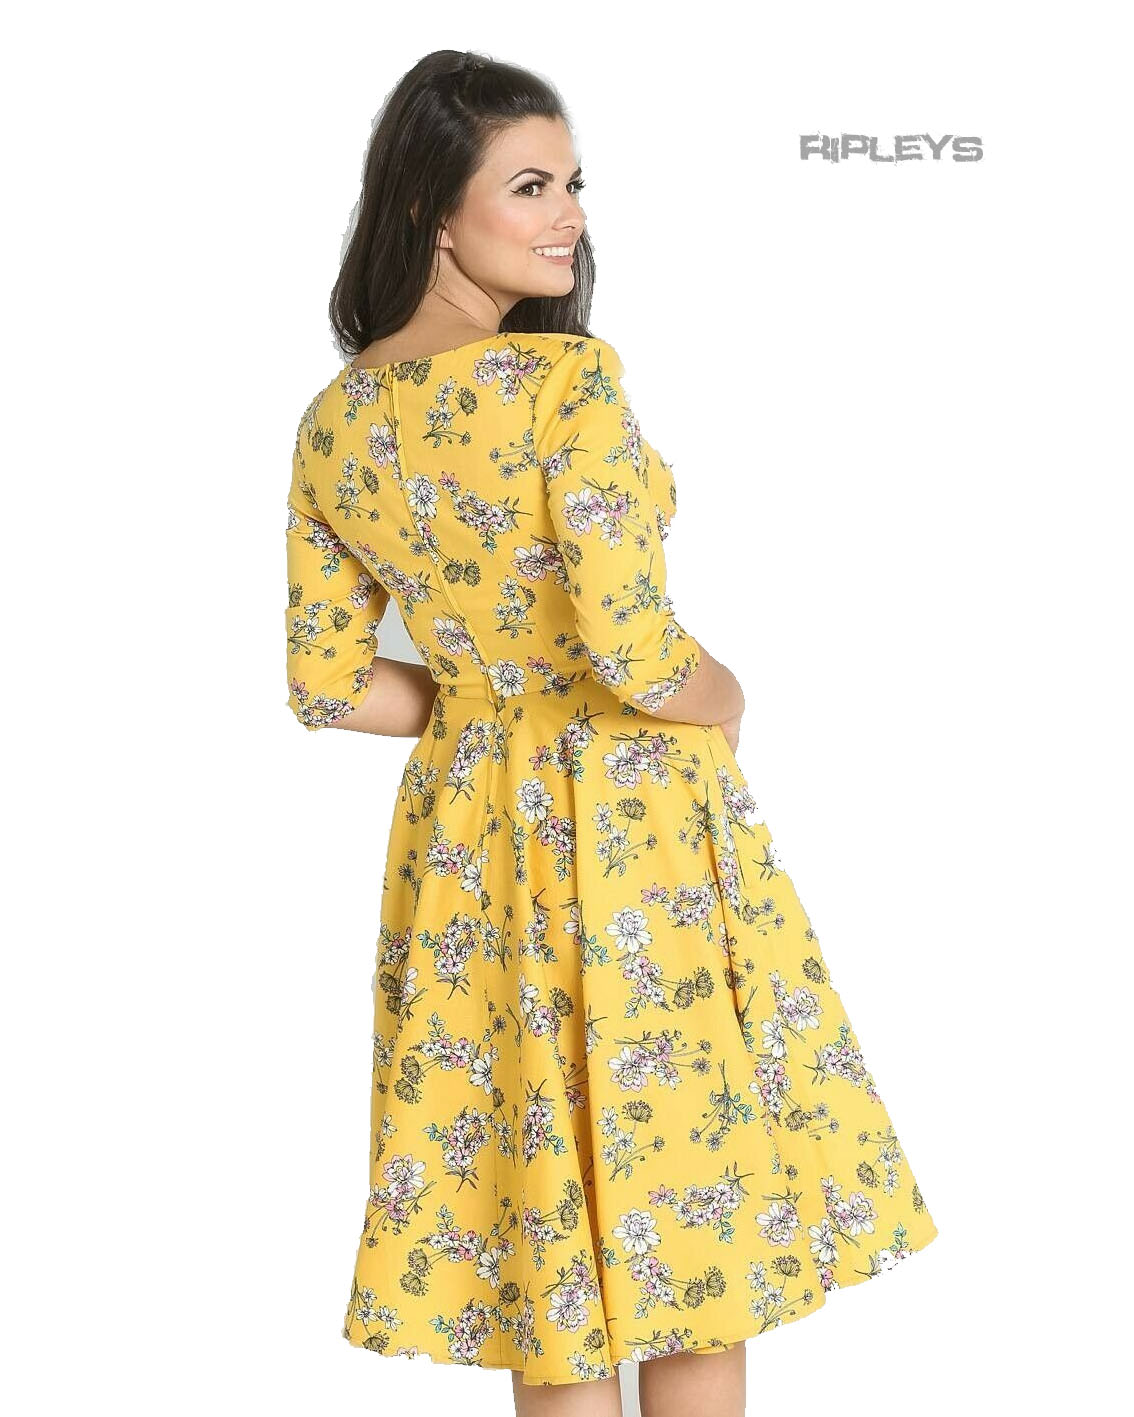 Hell-Bunny-40s-50s-Pin-Up-Vintage-Dress-MURIEL-Flowers-Yellow-All-Sizes thumbnail 8